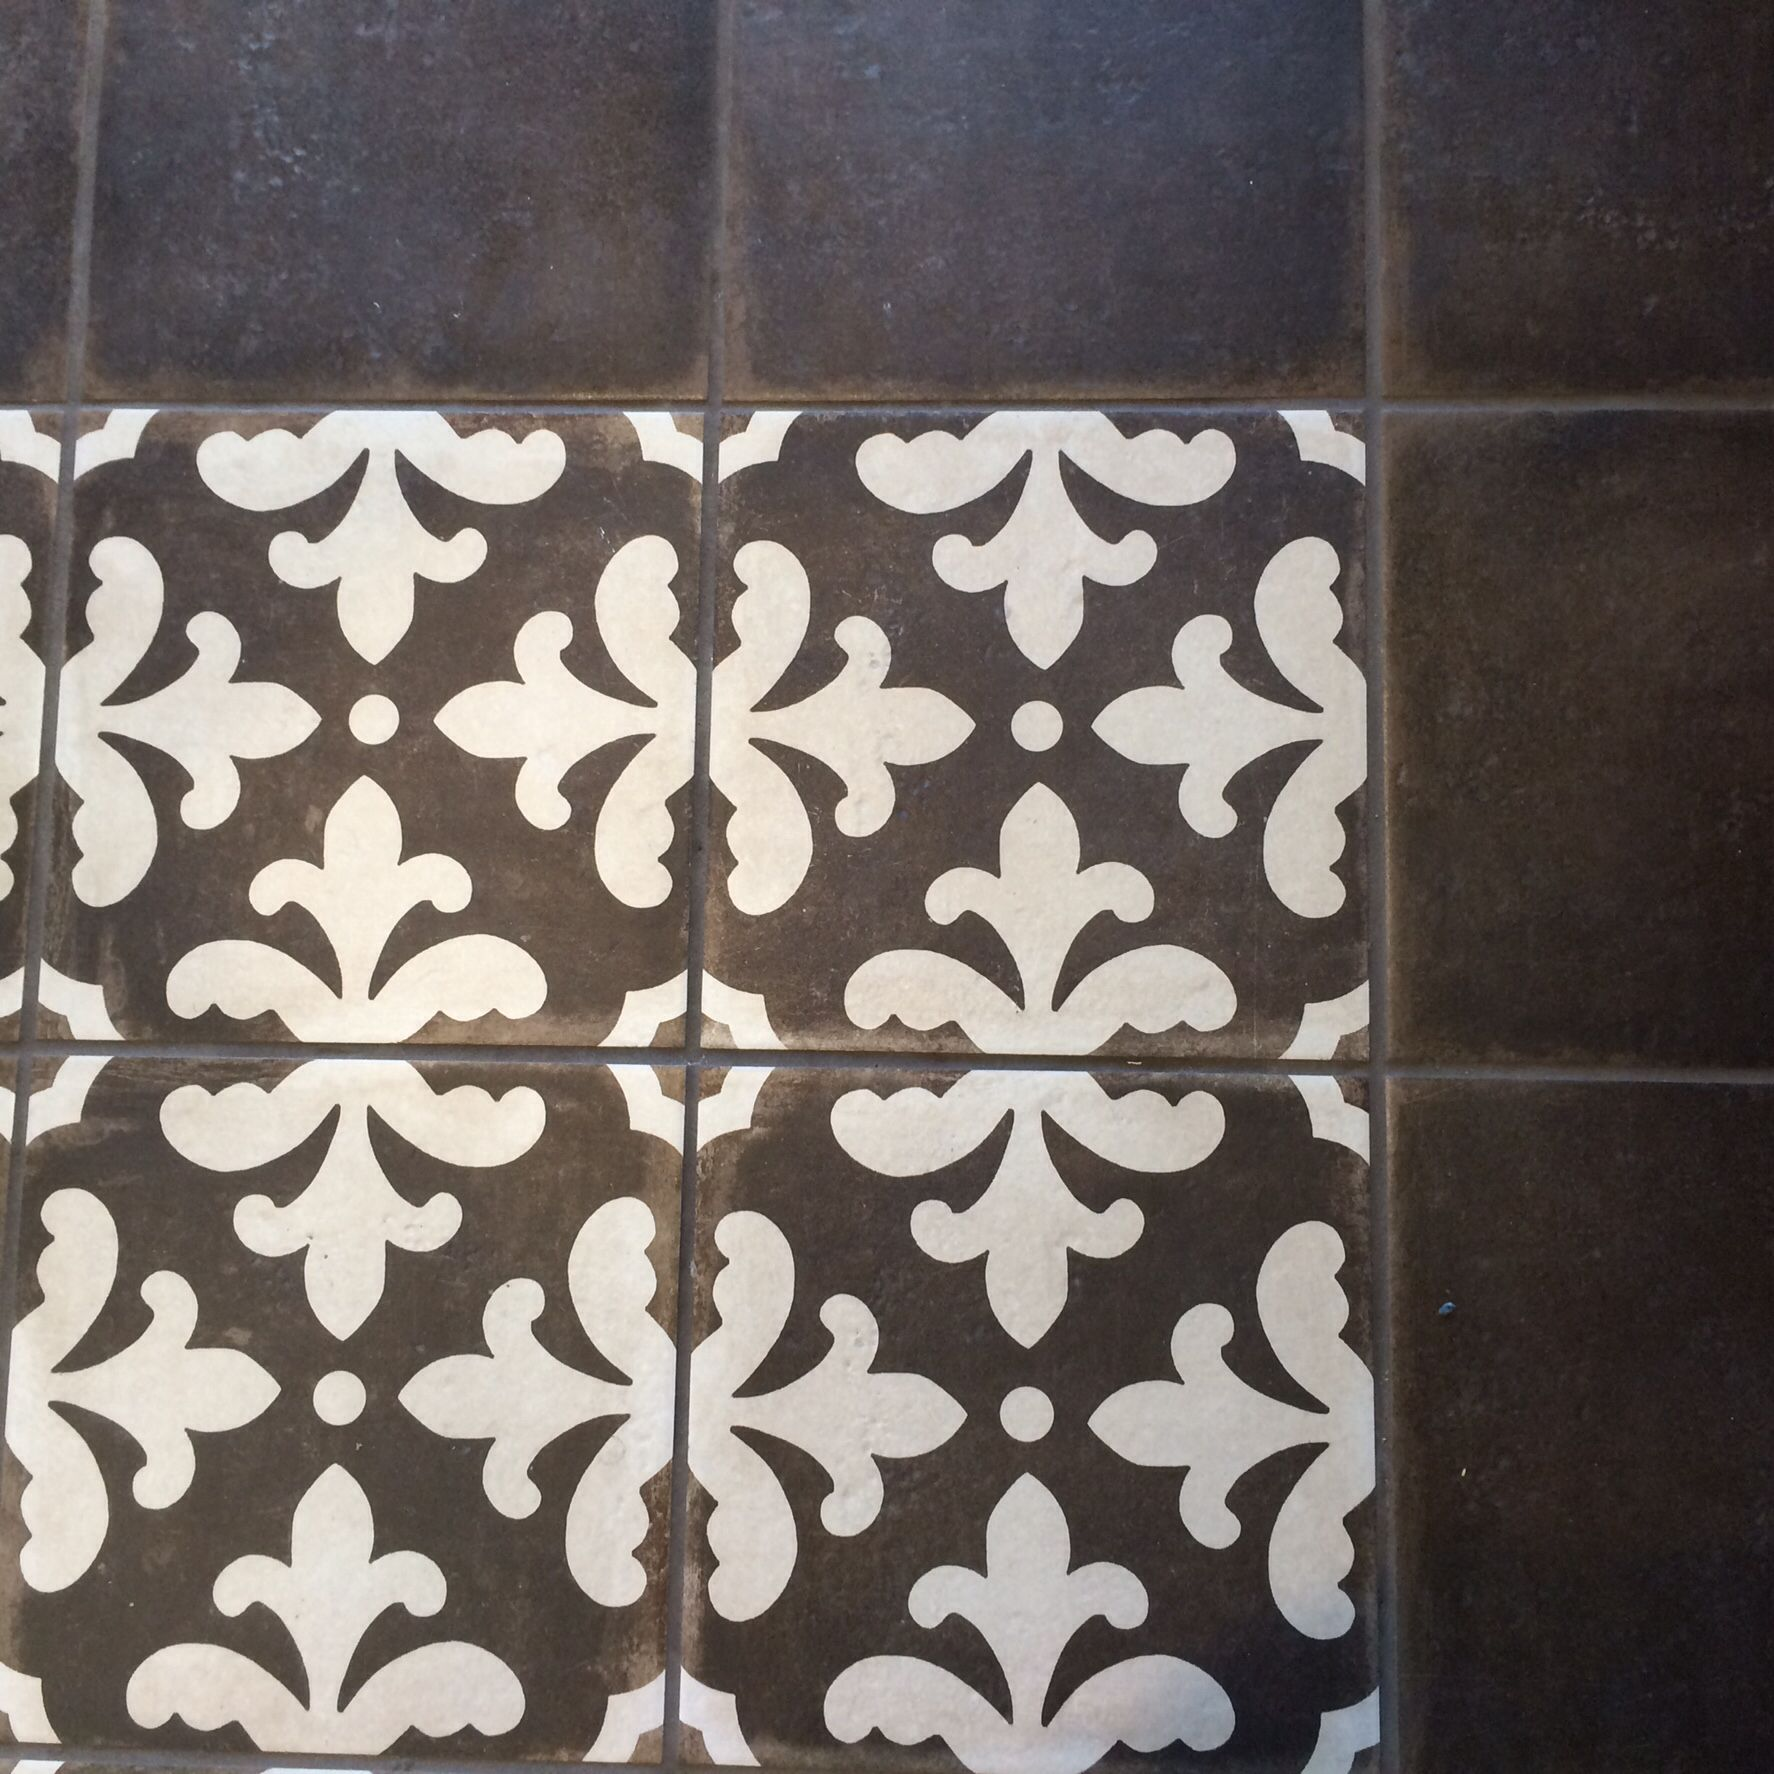 Palazzo Antique Cotto Tile Cotto Tile Guest Room Office Bathroom Flooring